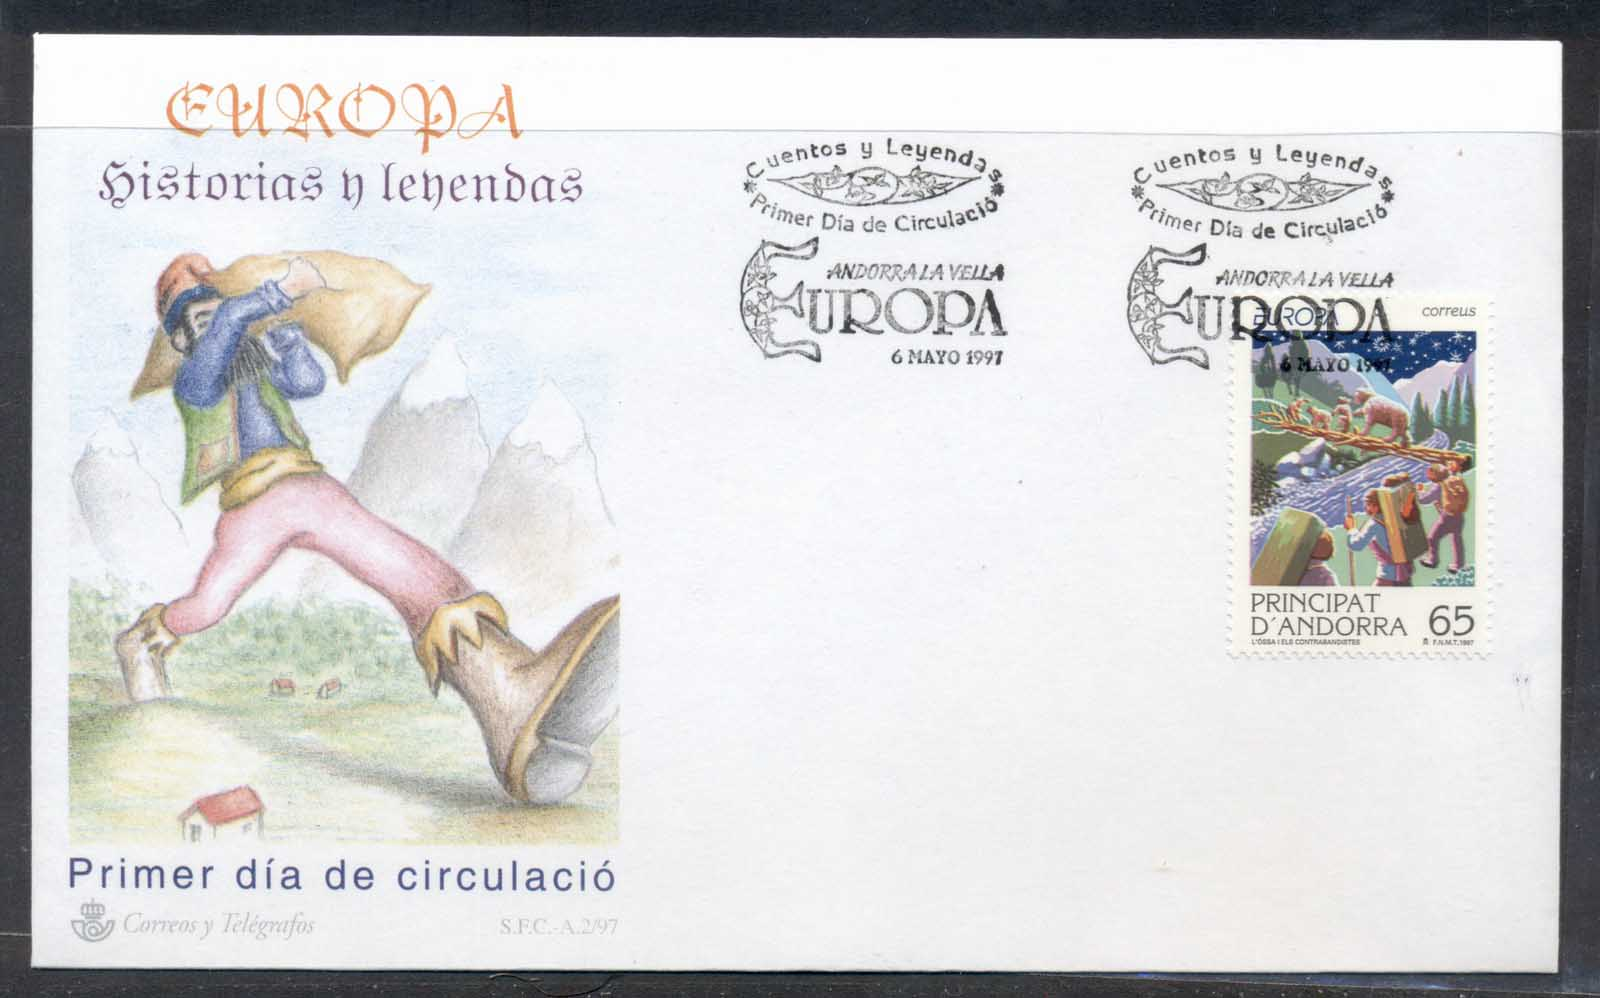 Andorra (Sp) 1997 Europa Myths & legends FDC